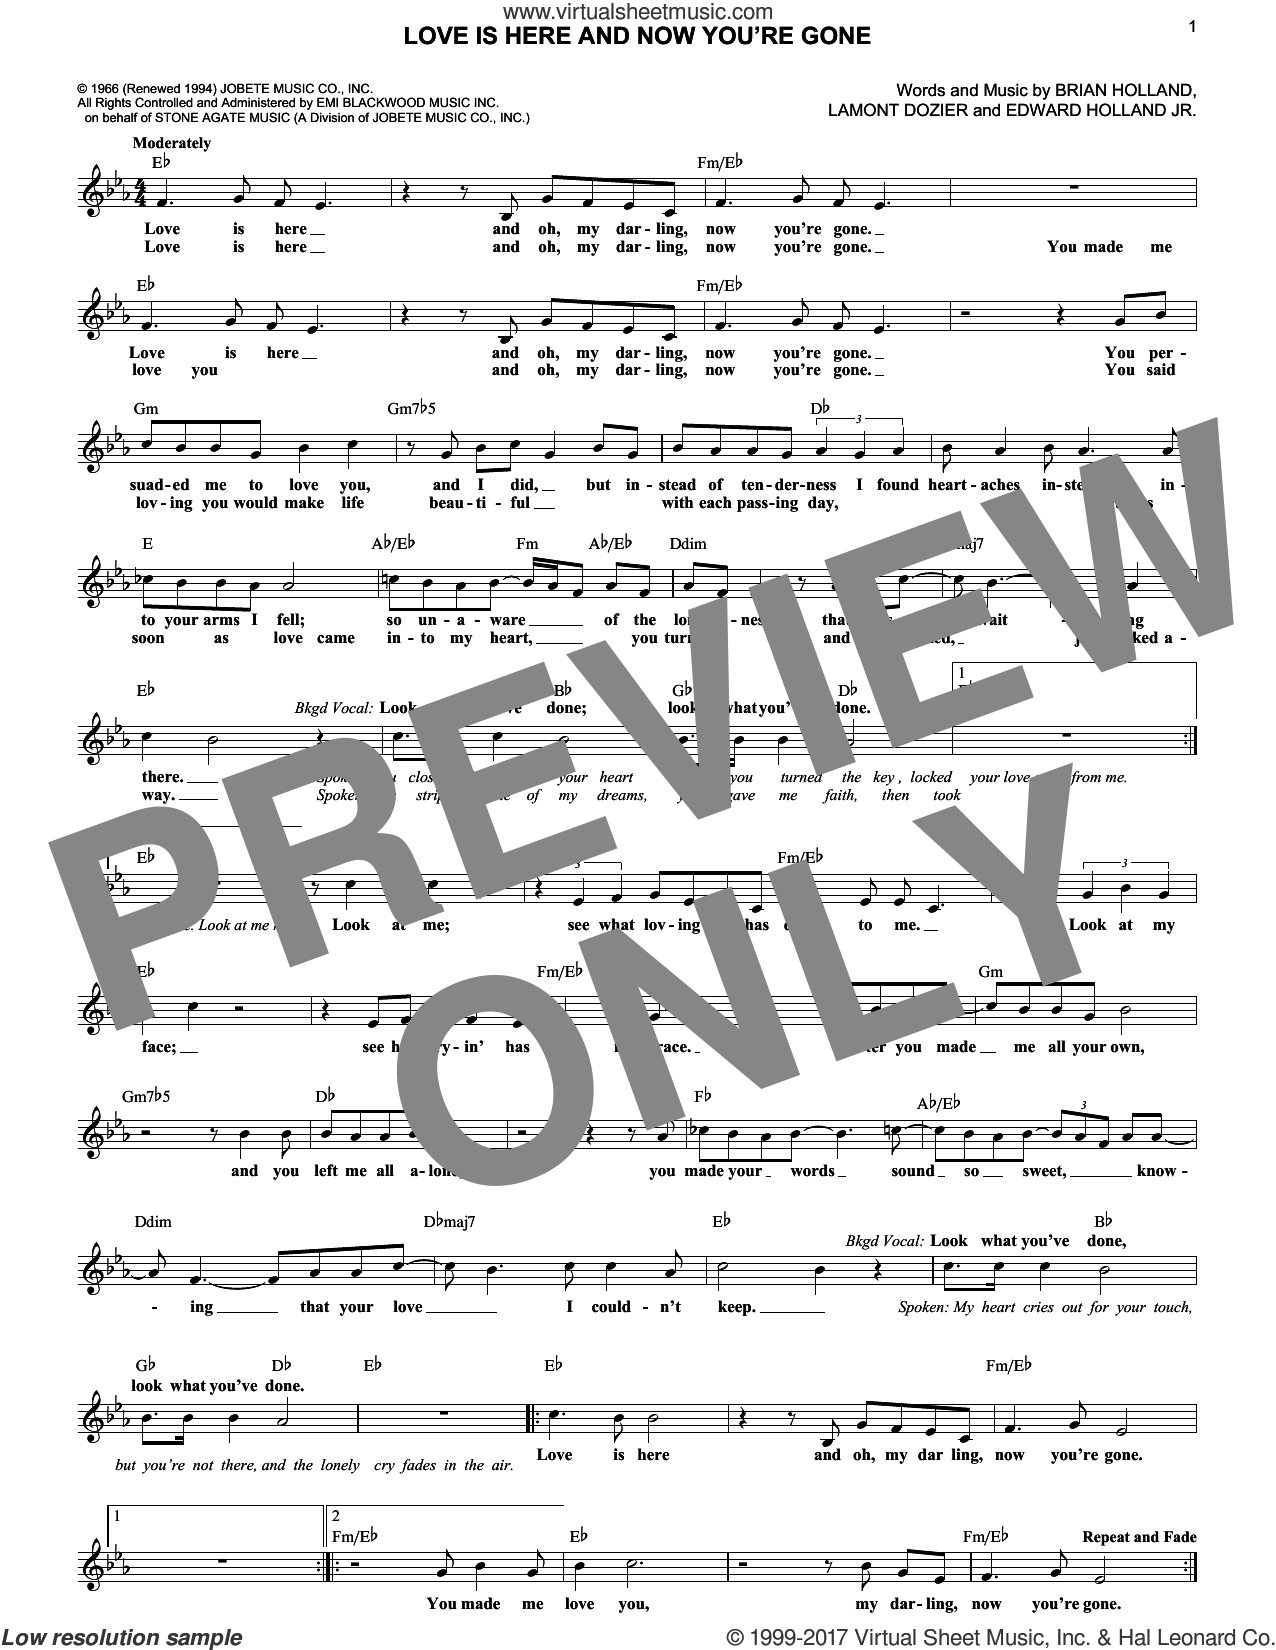 Love Is Here And Now You're Gone sheet music for voice and other instruments (fake book) by The Supremes, Brian Holland, Edward Holland Jr. and Lamont Dozier, intermediate skill level